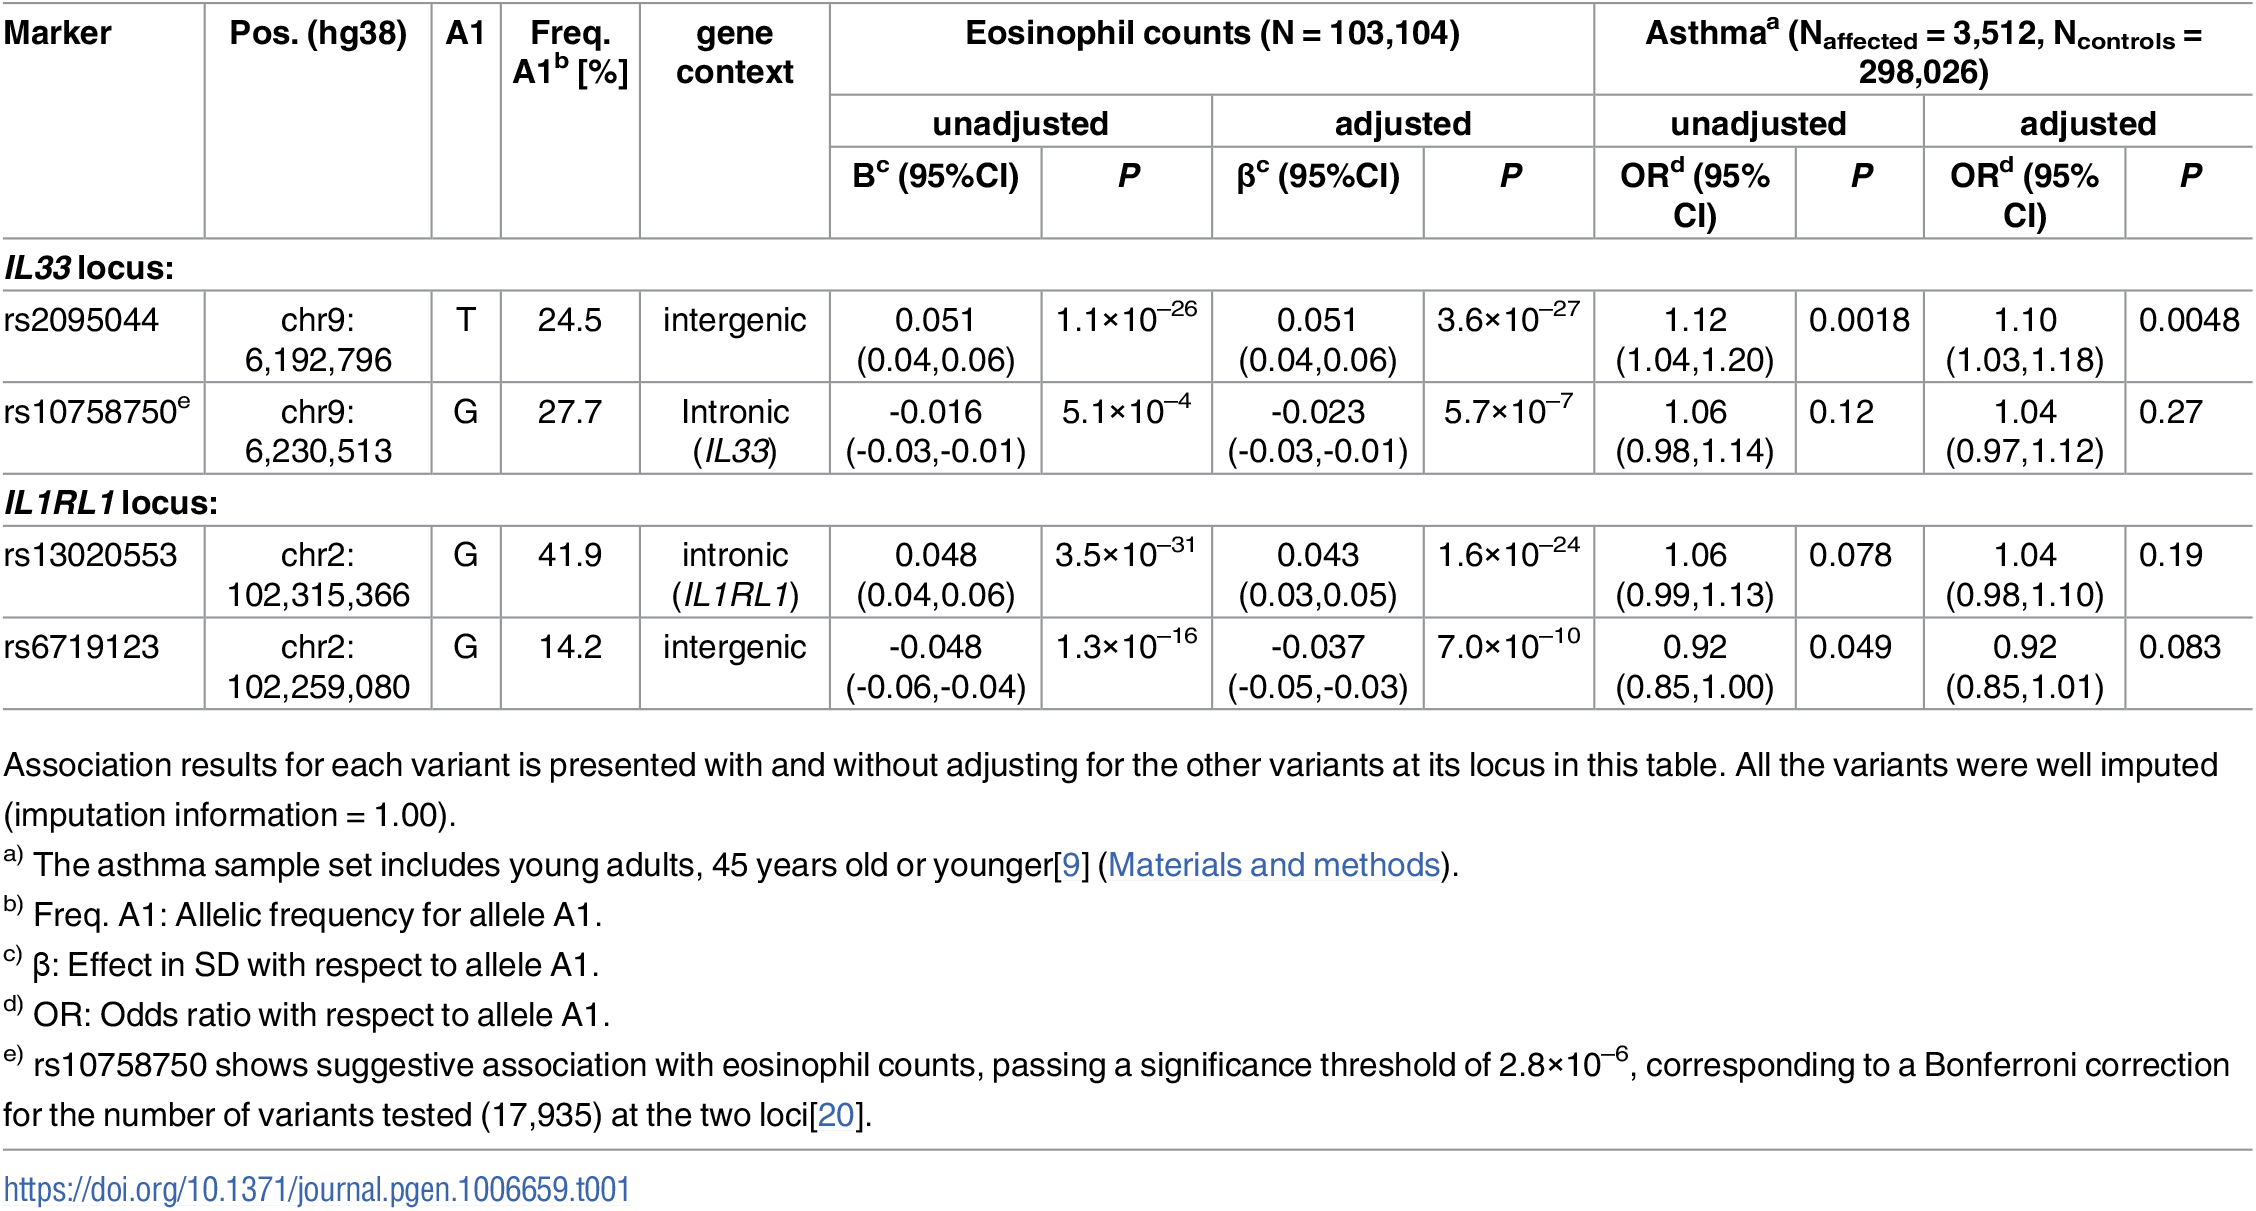 Association of common sequence variants in <i>IL33</i> and <i>IL1RL1</i> with eosinophil counts and asthma in Iceland.